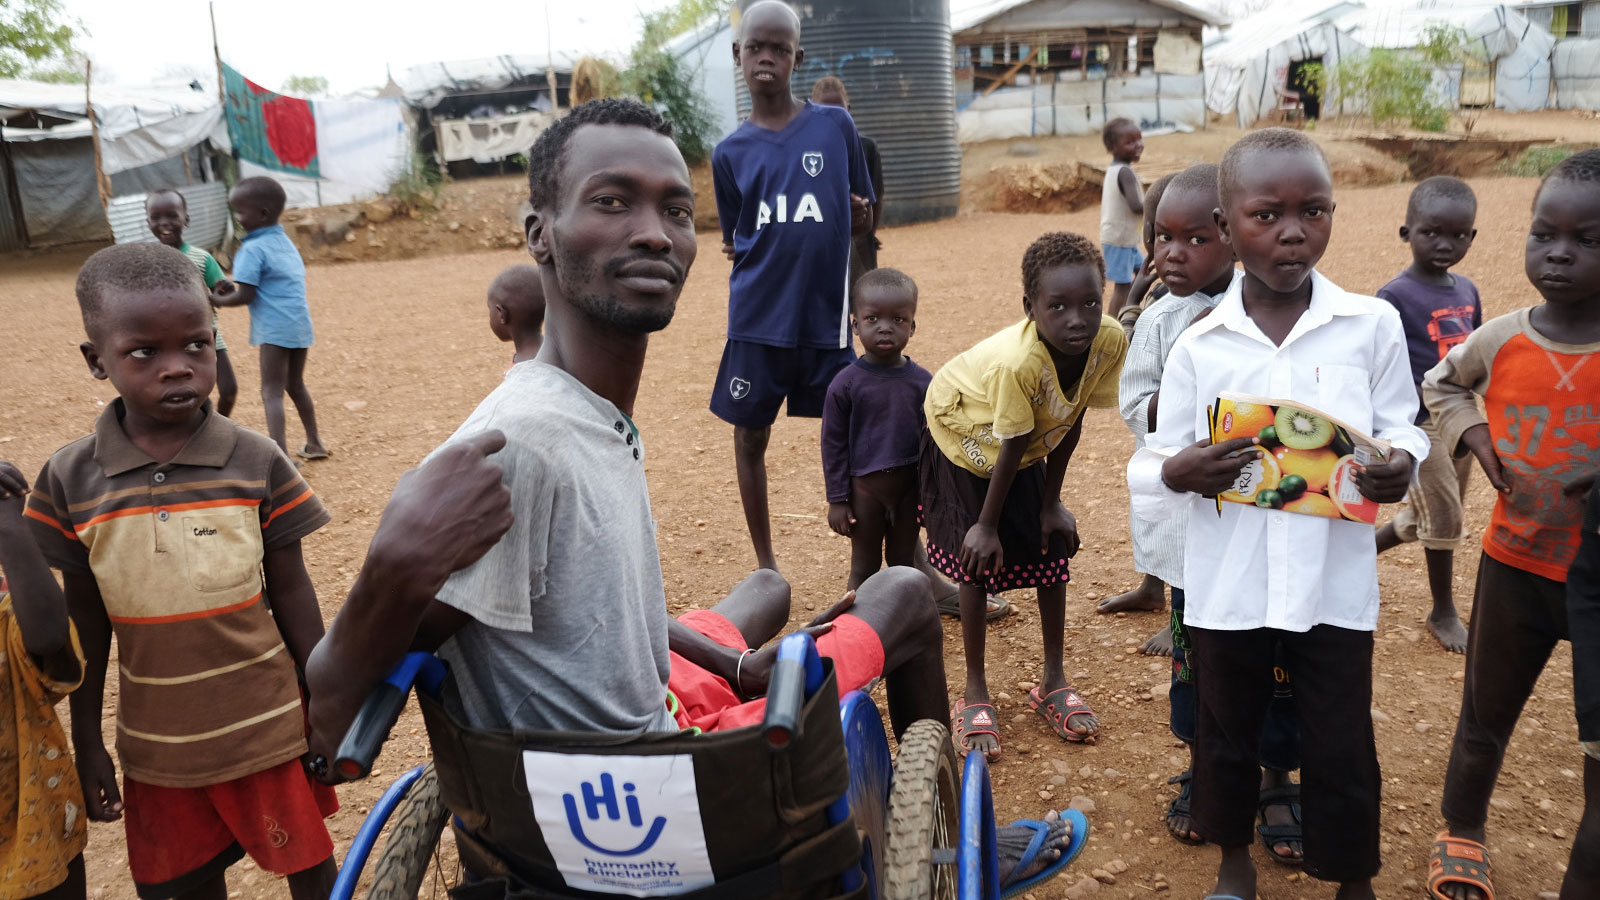 South Sudan | Displaced and disabled: humanitarian services fall short